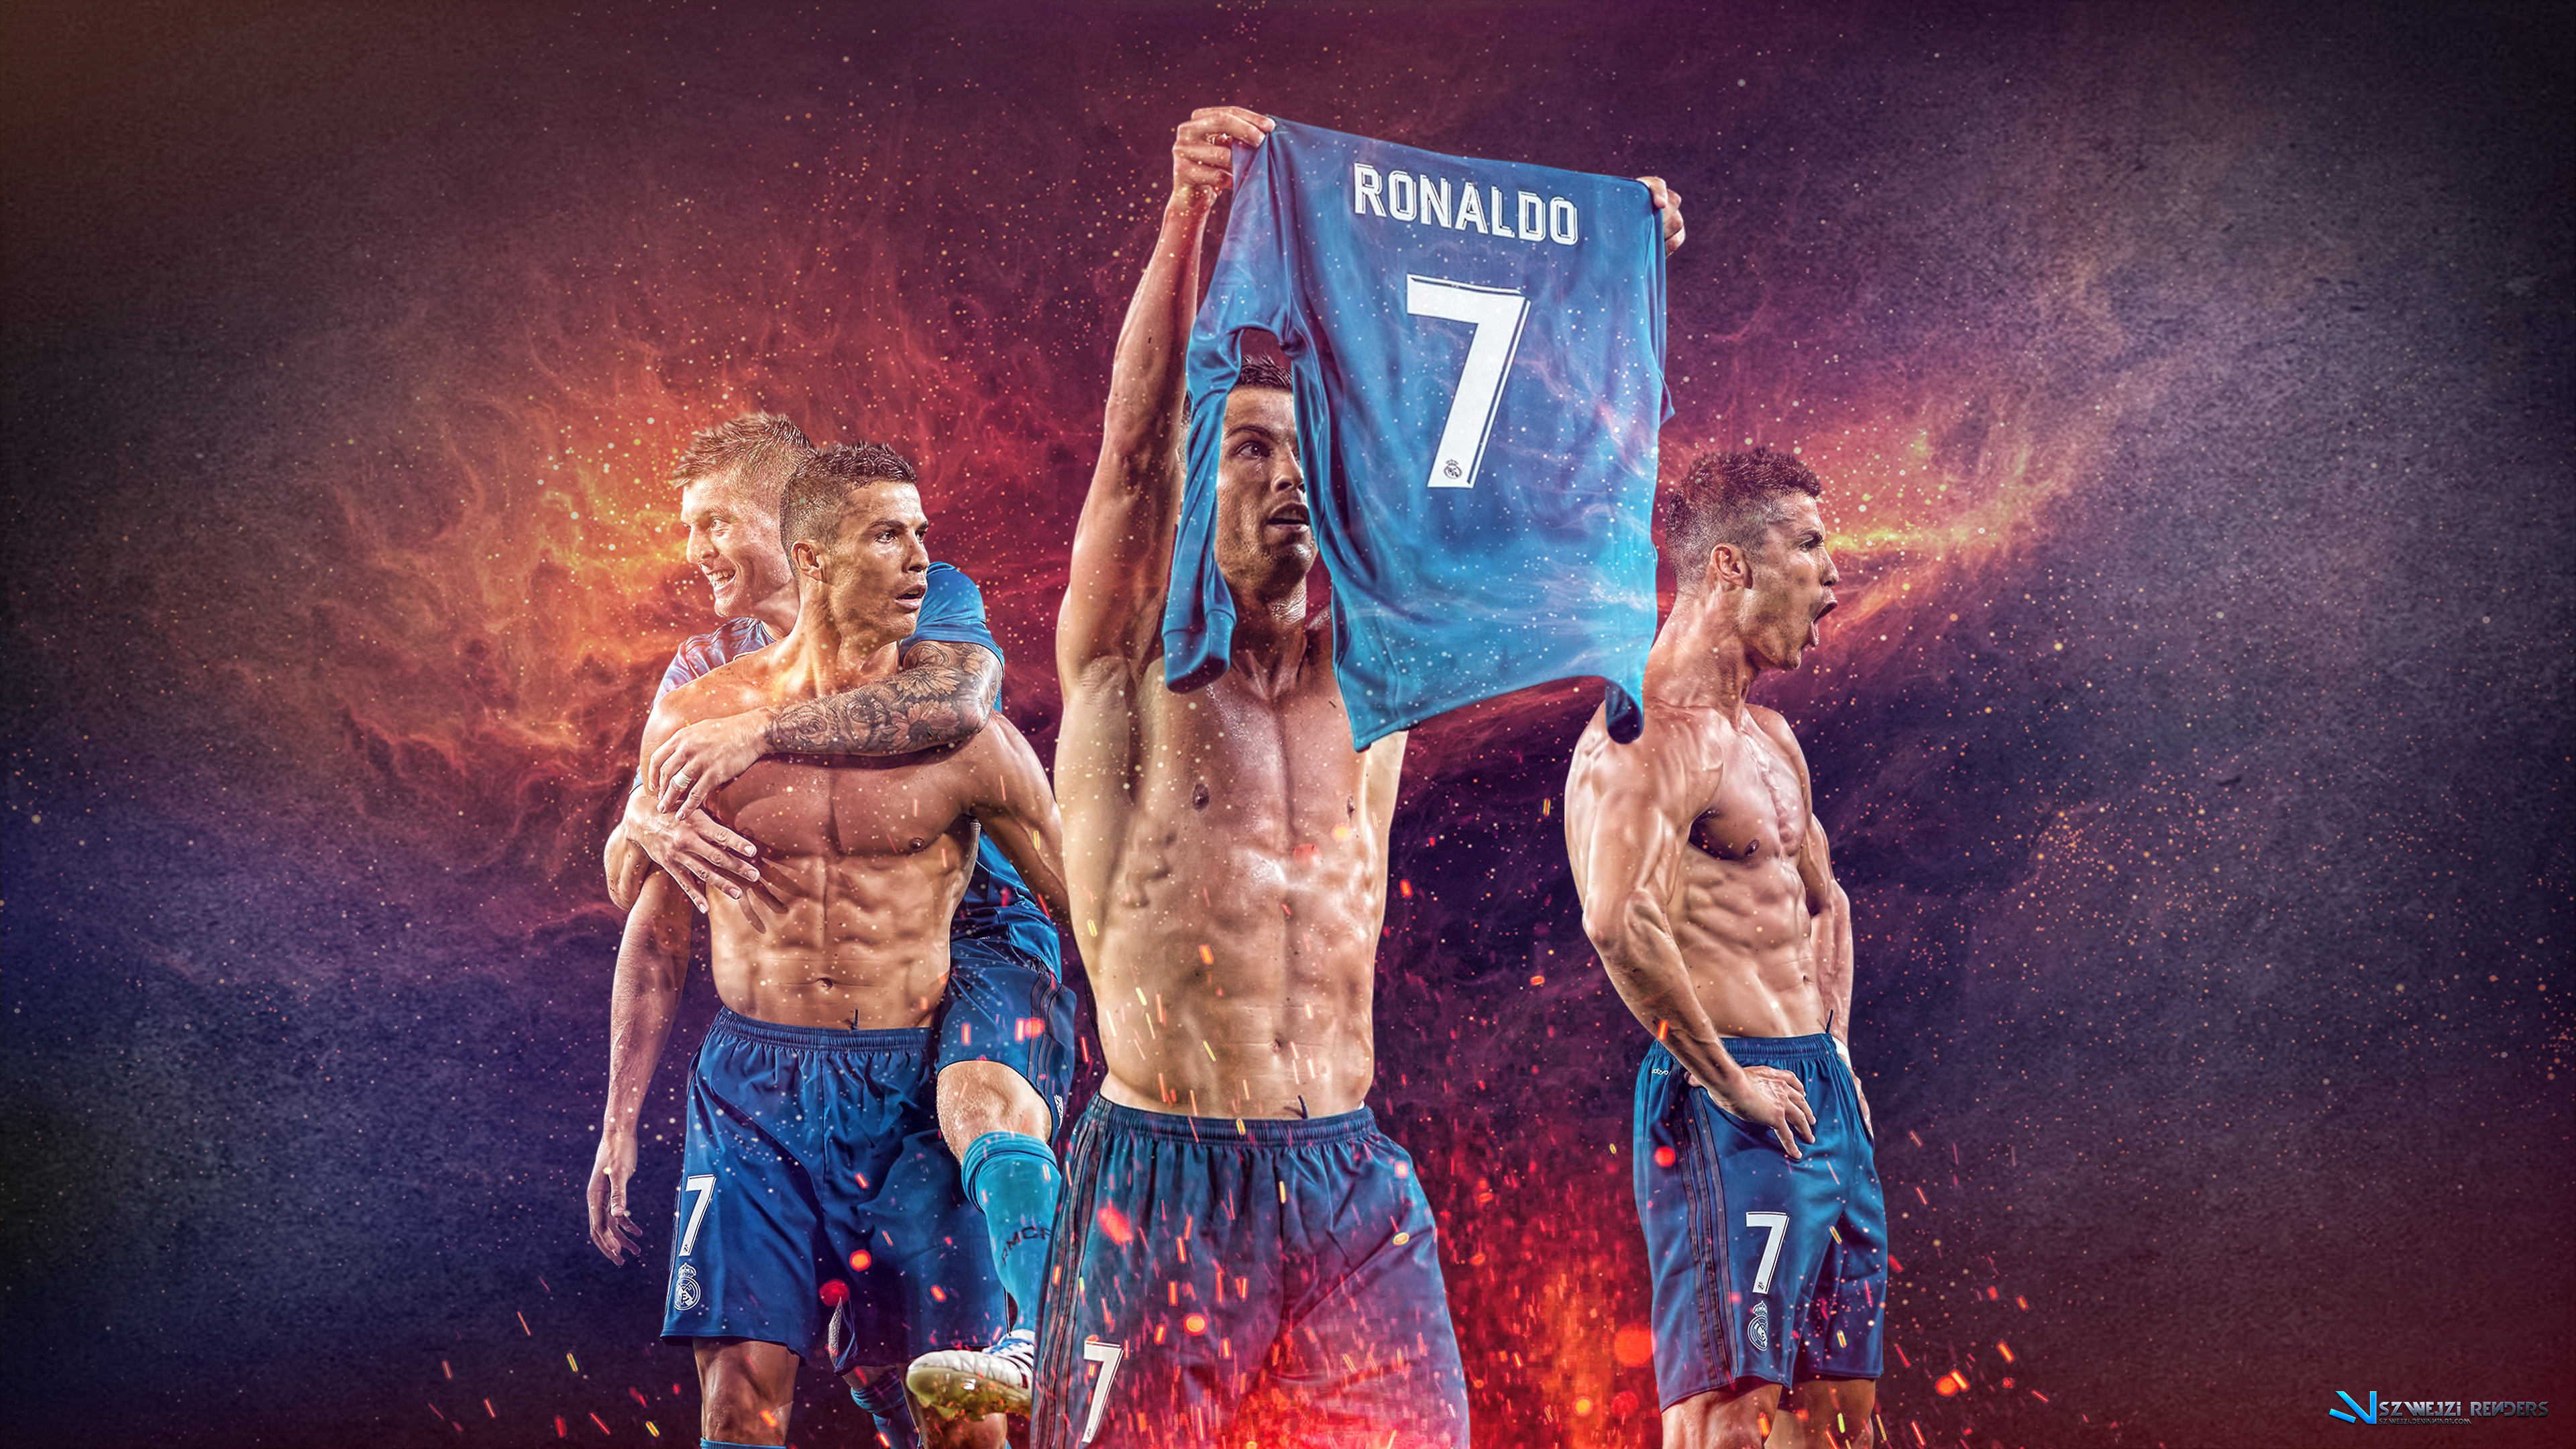 Cristiano Ronaldo 2018 Stock Photos and Pictures Getty Images C ronaldo pictures 2018